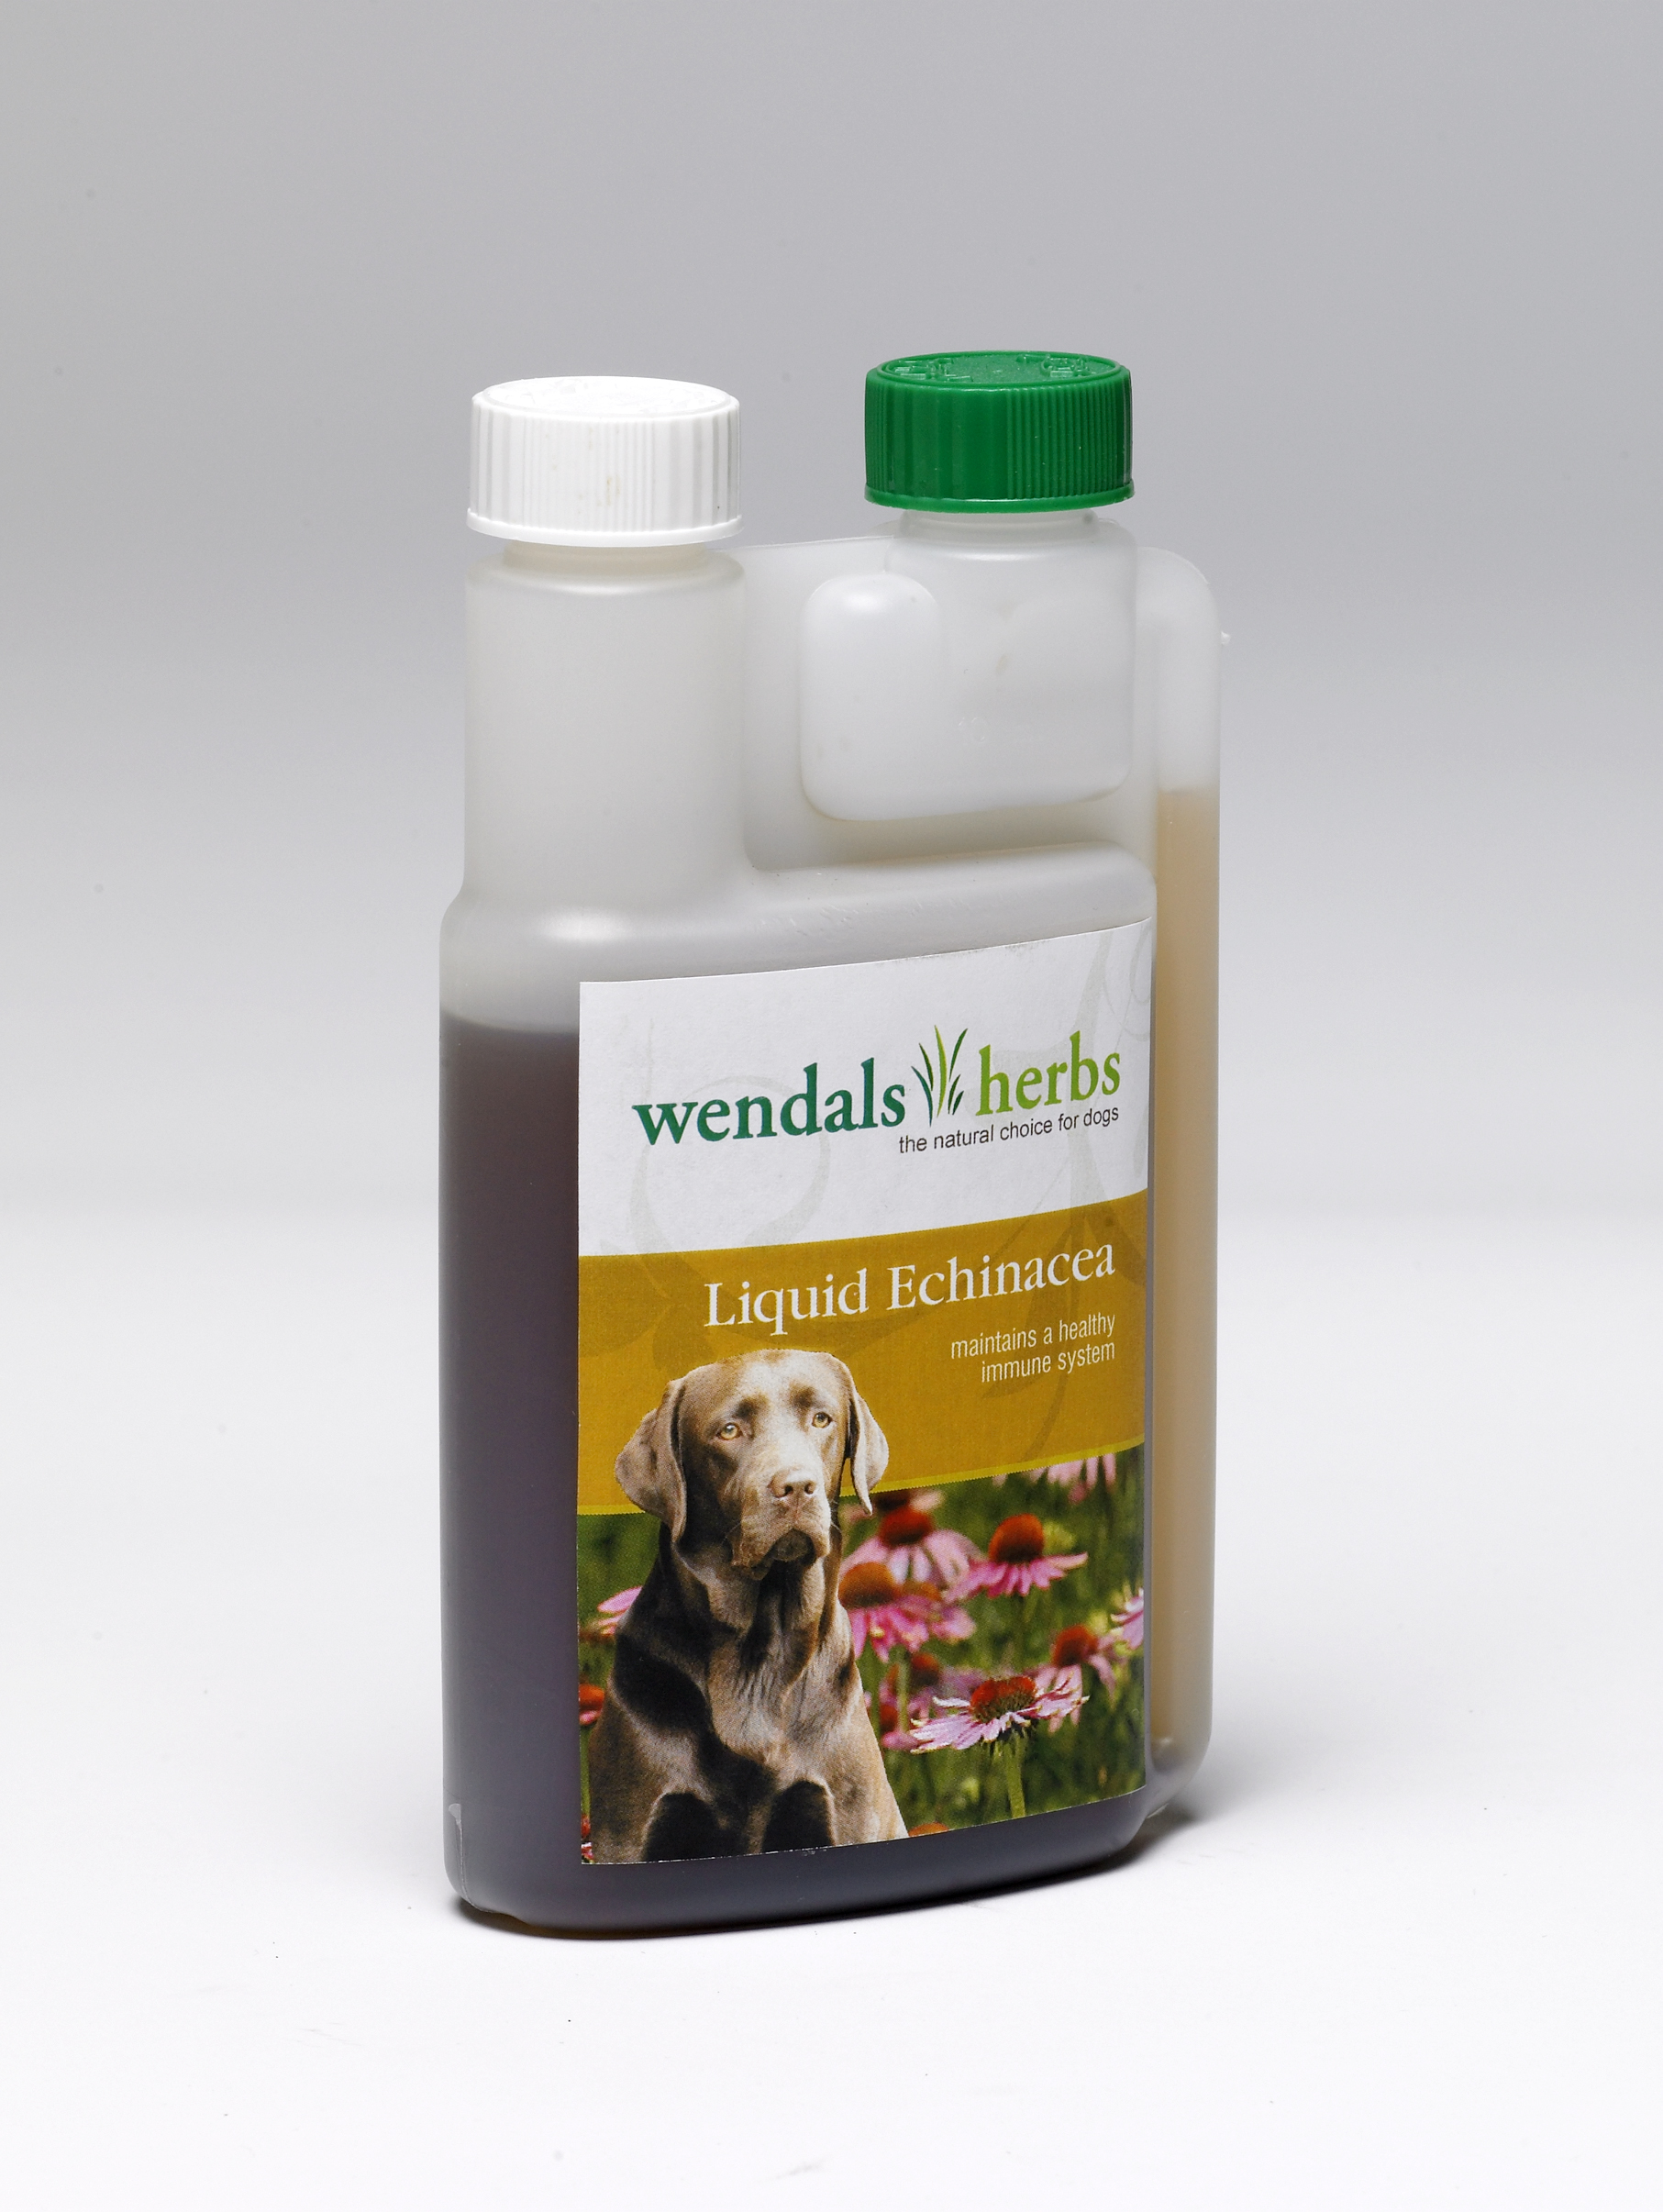 Wendals Liquid Echinacea for Dogs